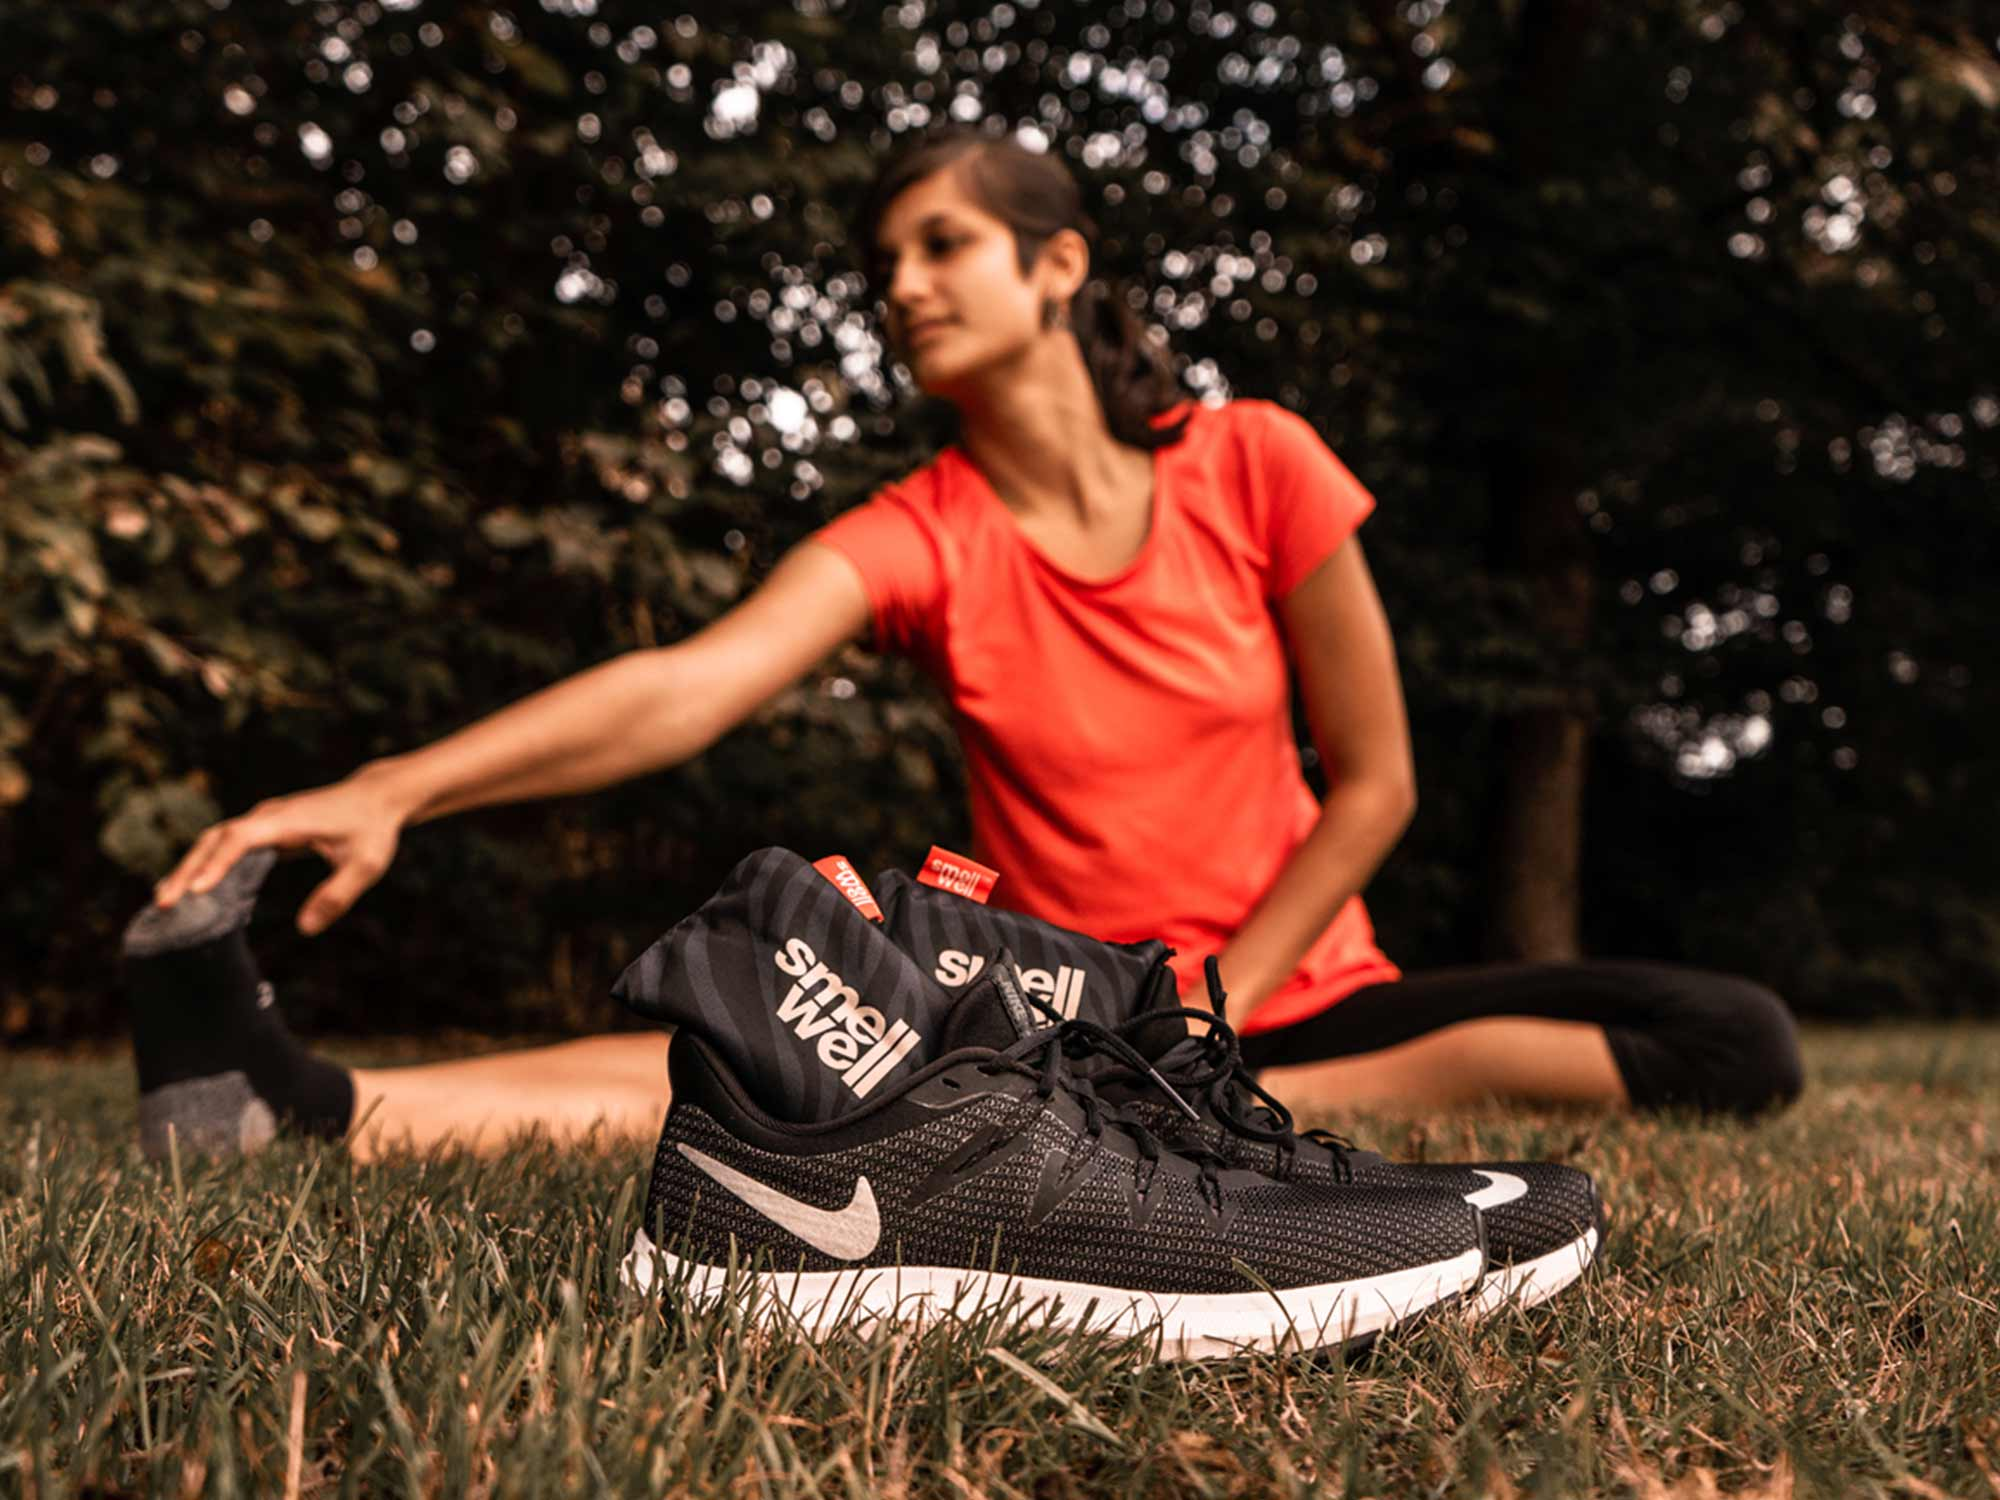 Woman stretching on a grass field behind a pair of Black Nike running shoes with black SmellWell inserts inside them.